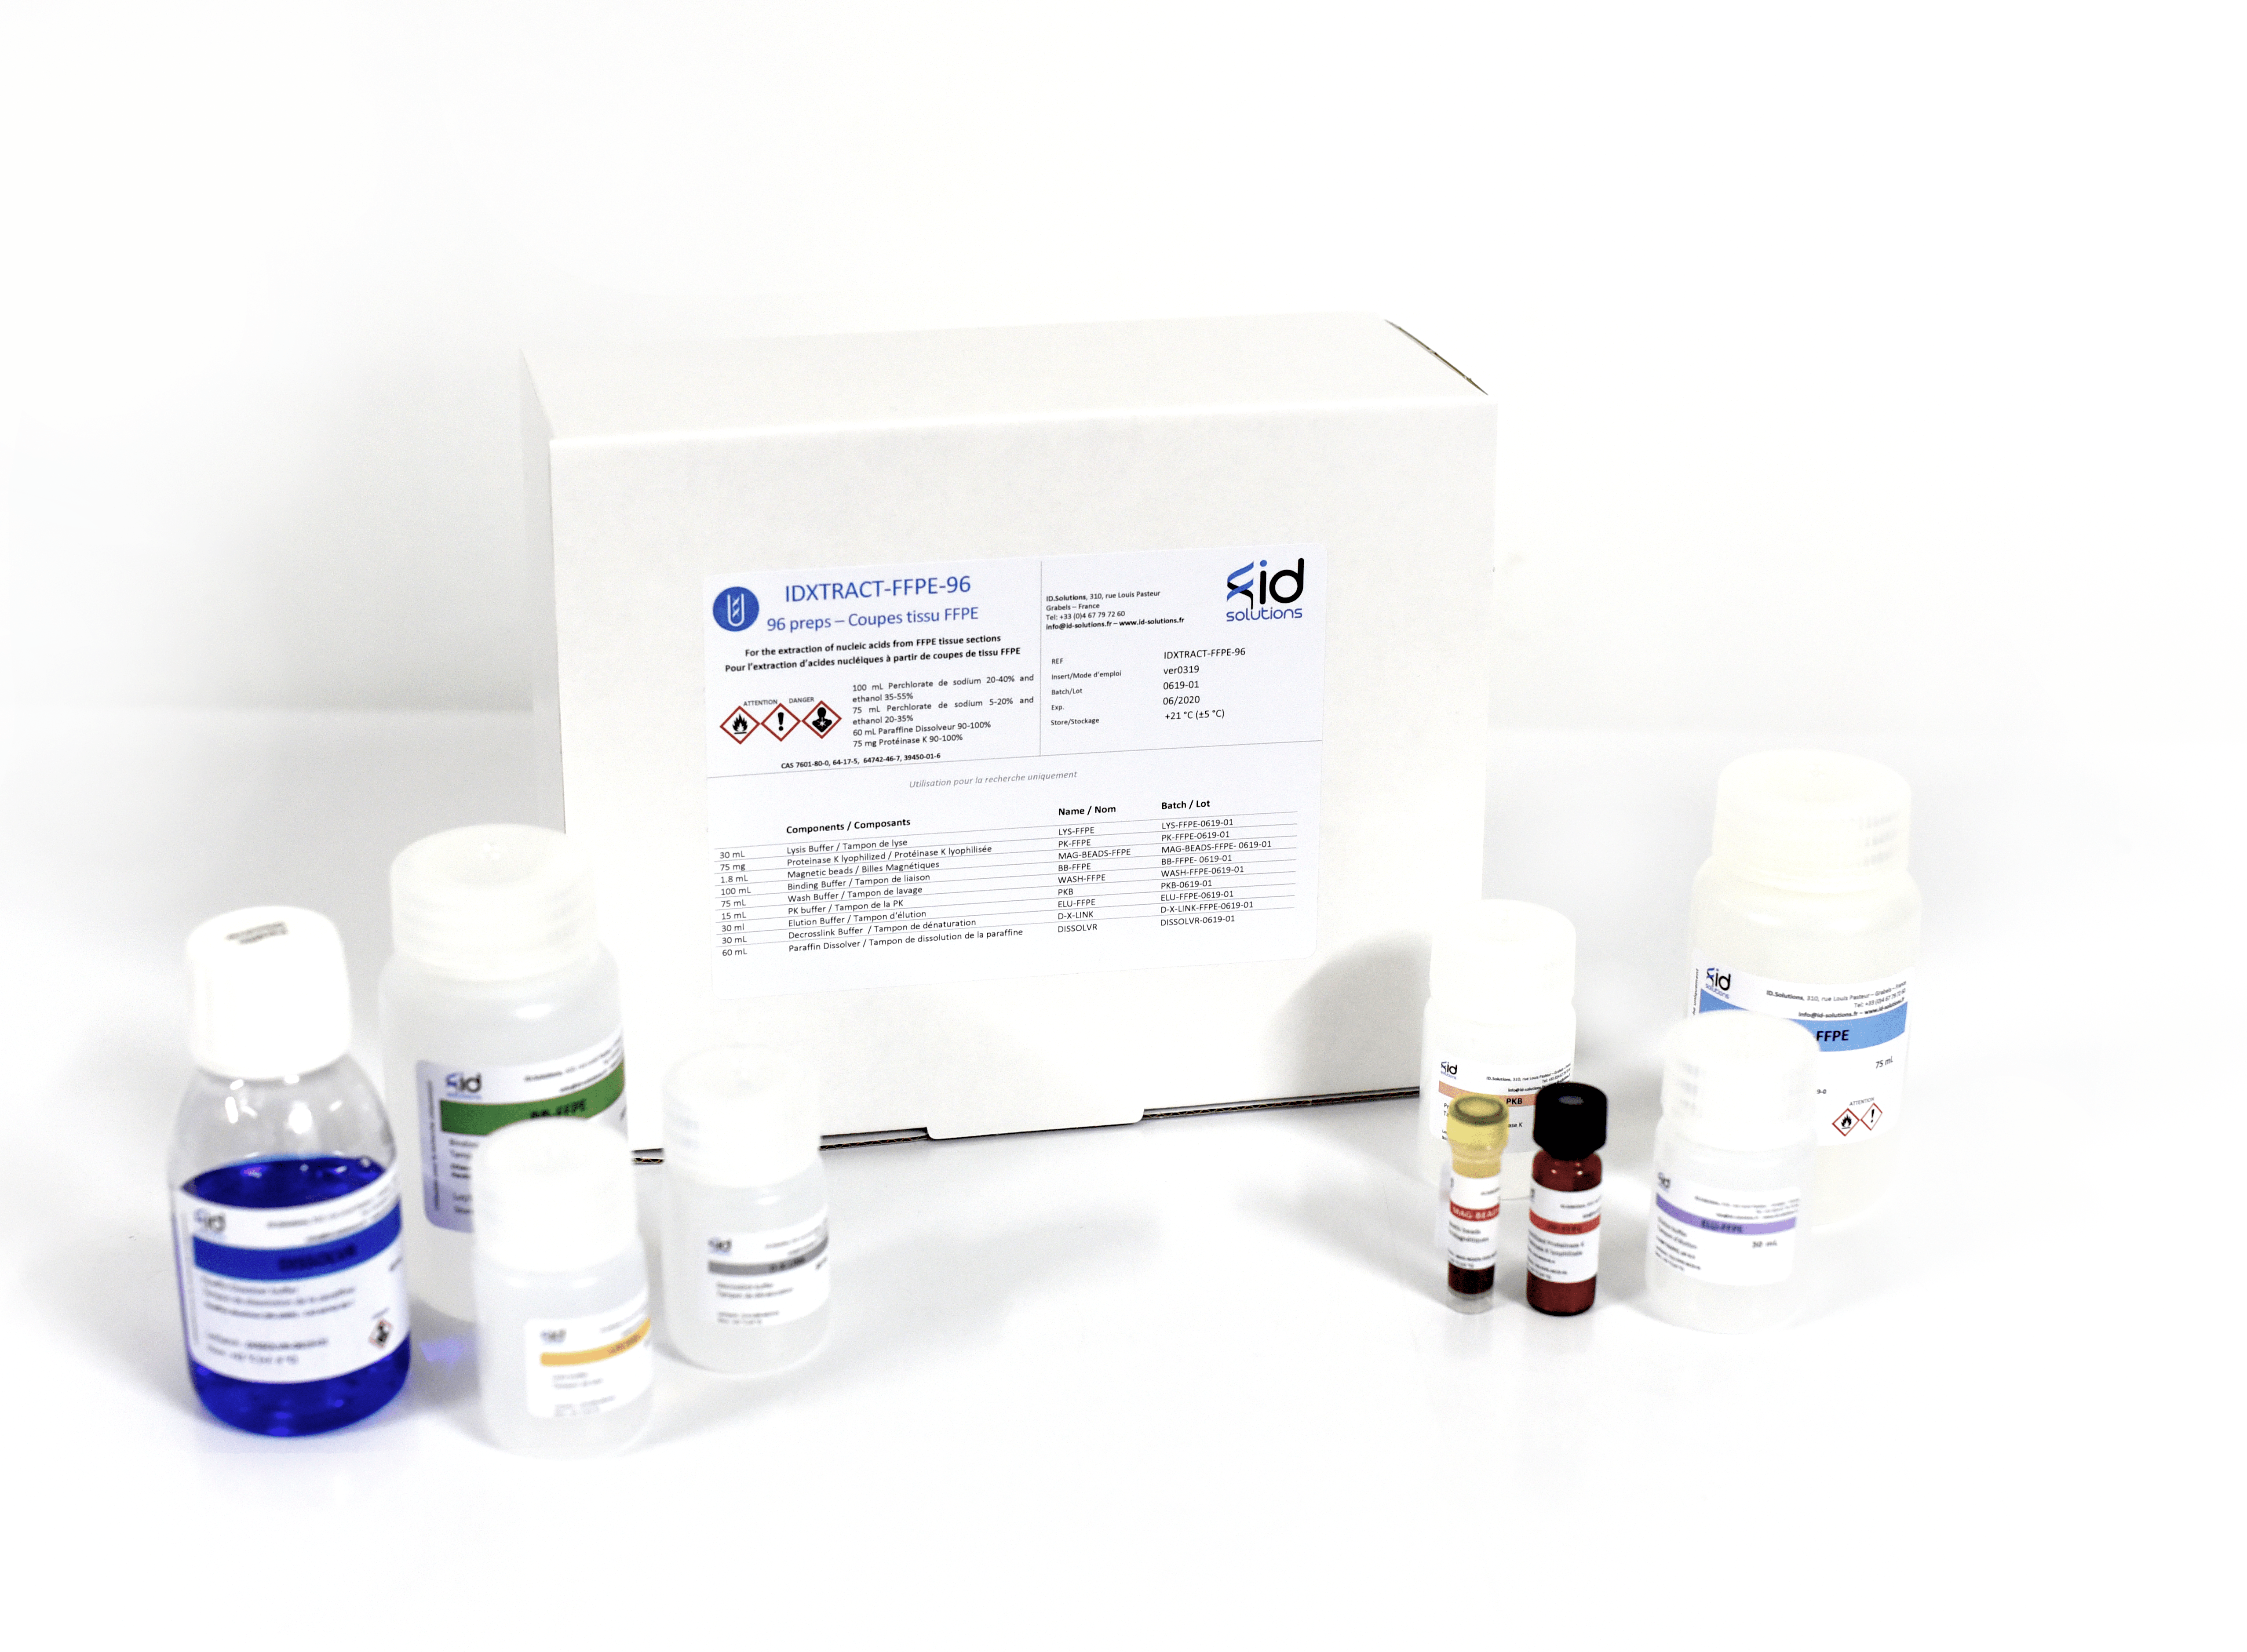 IDXTRACT-MAG-FFPE- DNA extraction isolation from FFPE